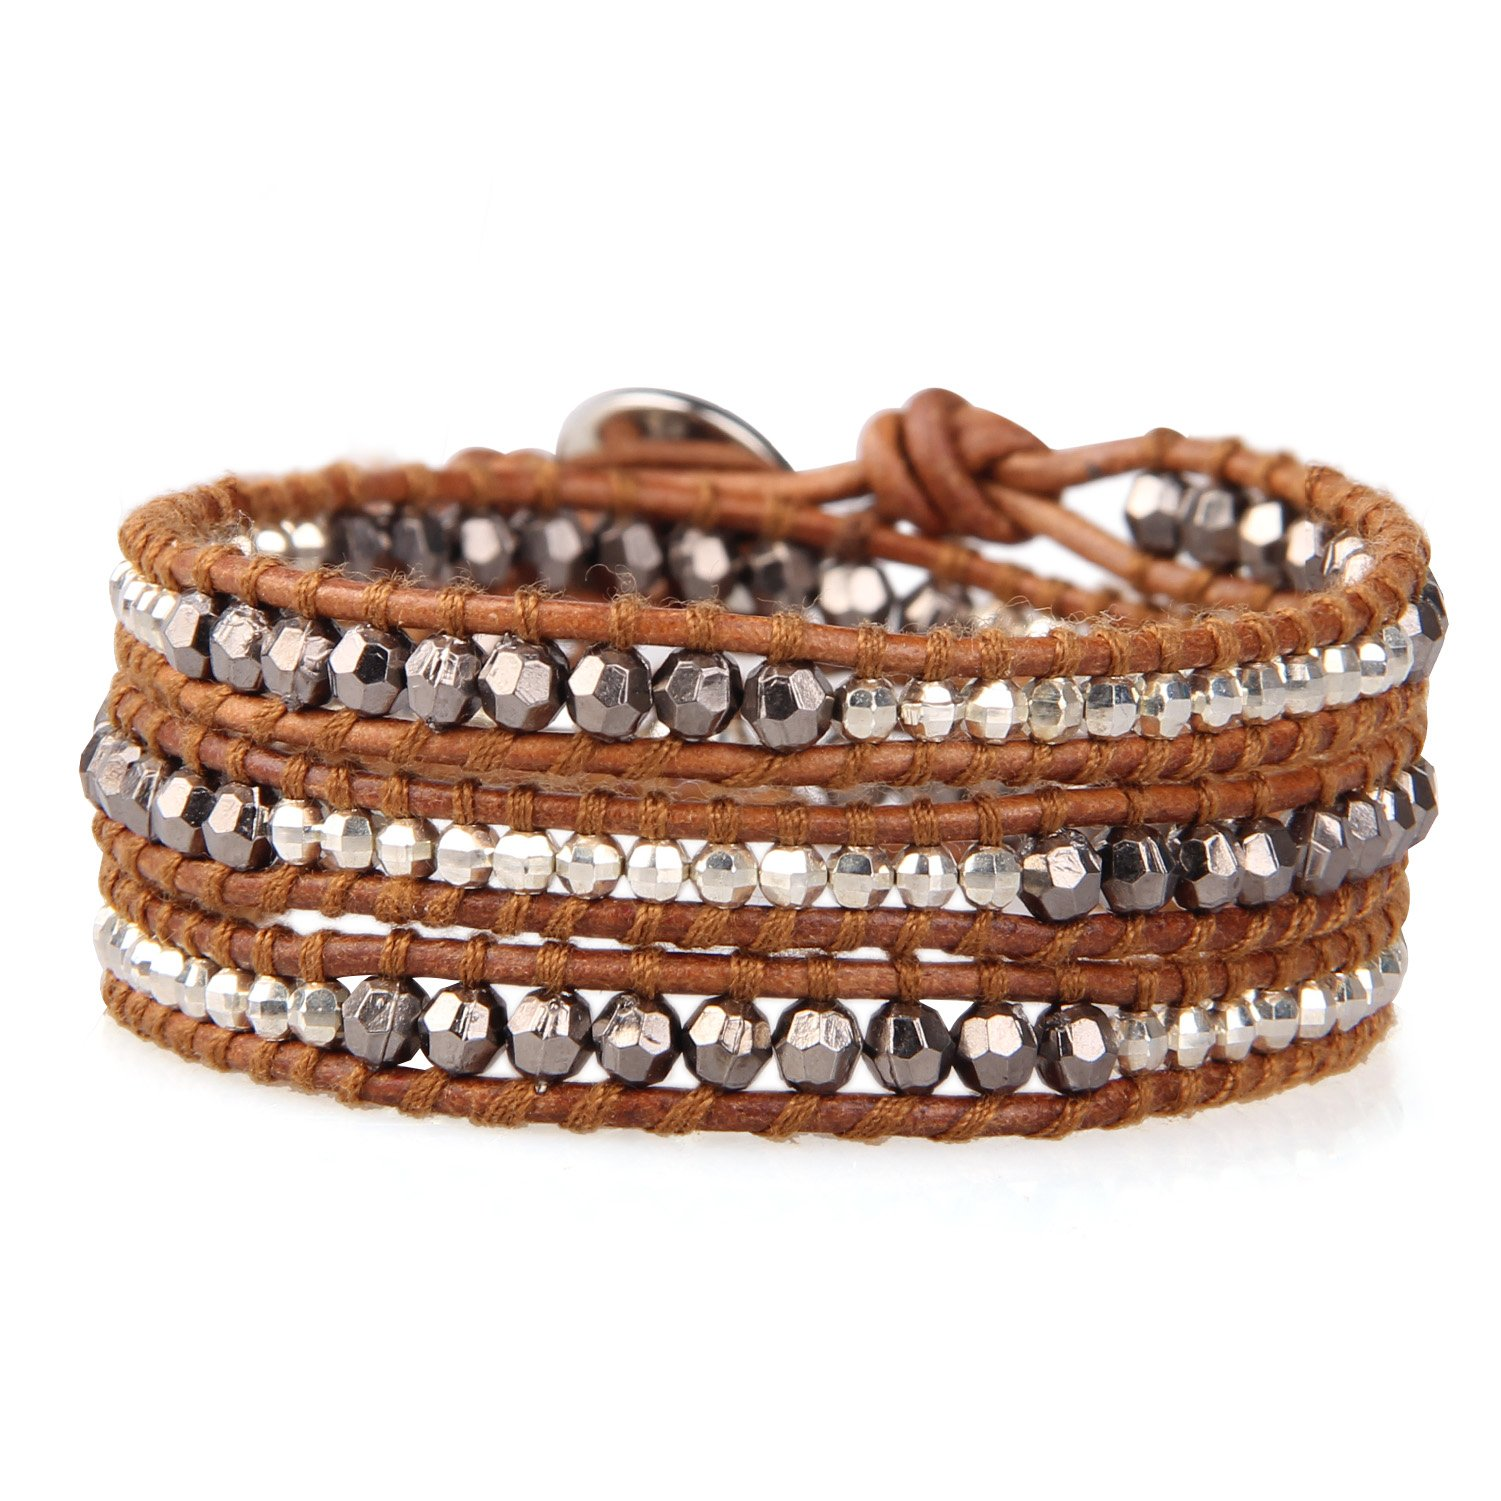 KELITCH Handamde Natural Leather 3 Wrap Bracelet New Top Silver Gun Black Beaded Bangles